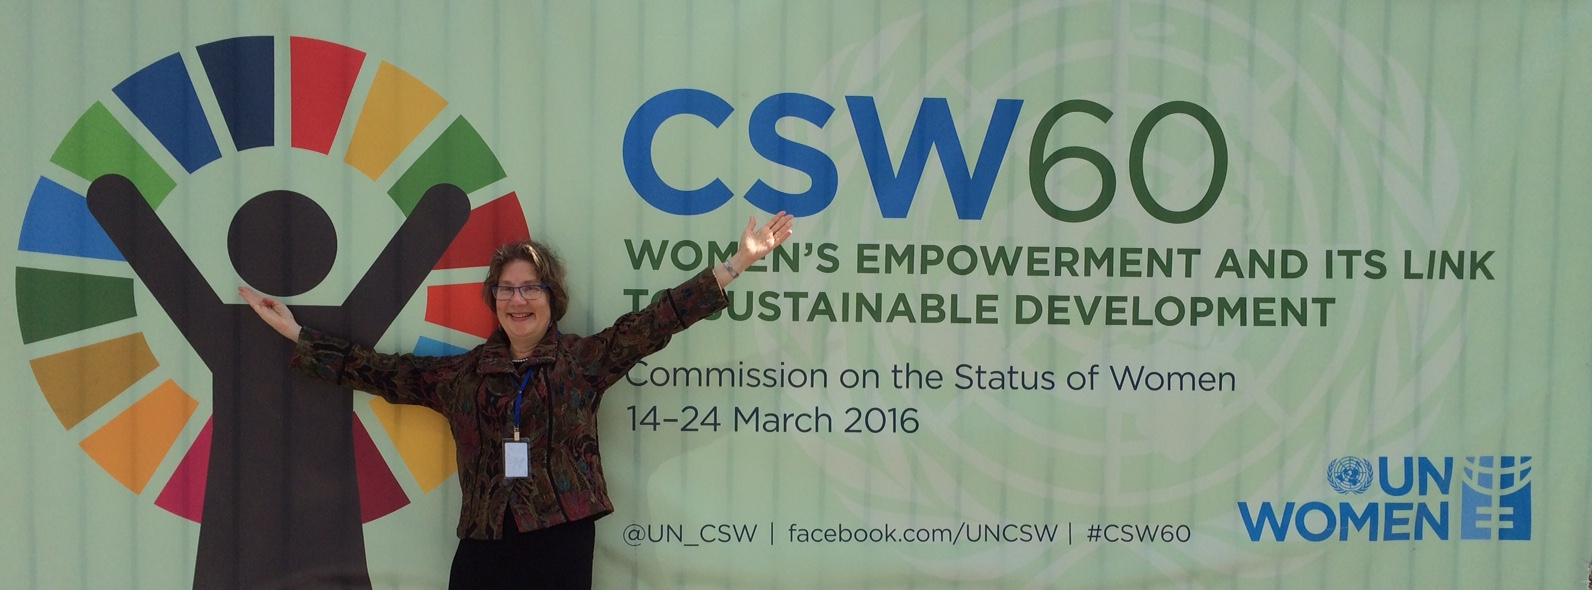 At the UN for CSW60